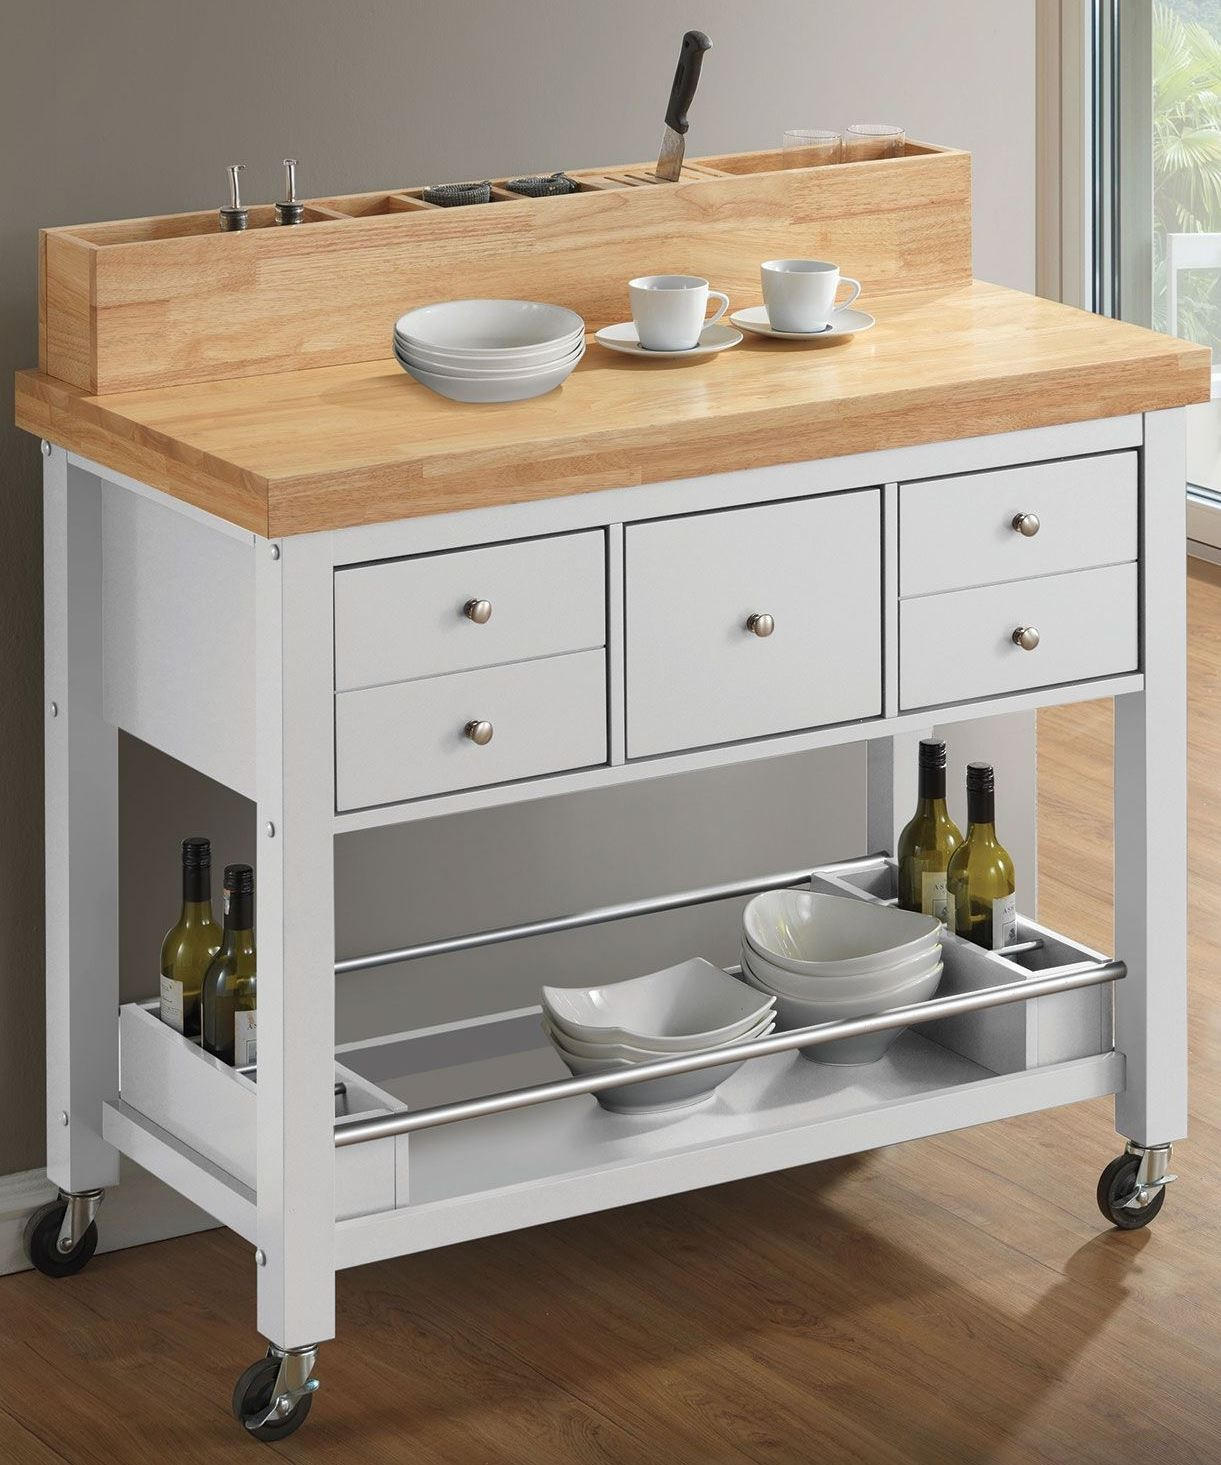 Coaster Kitchen Carts Natural and White Kitchen Island